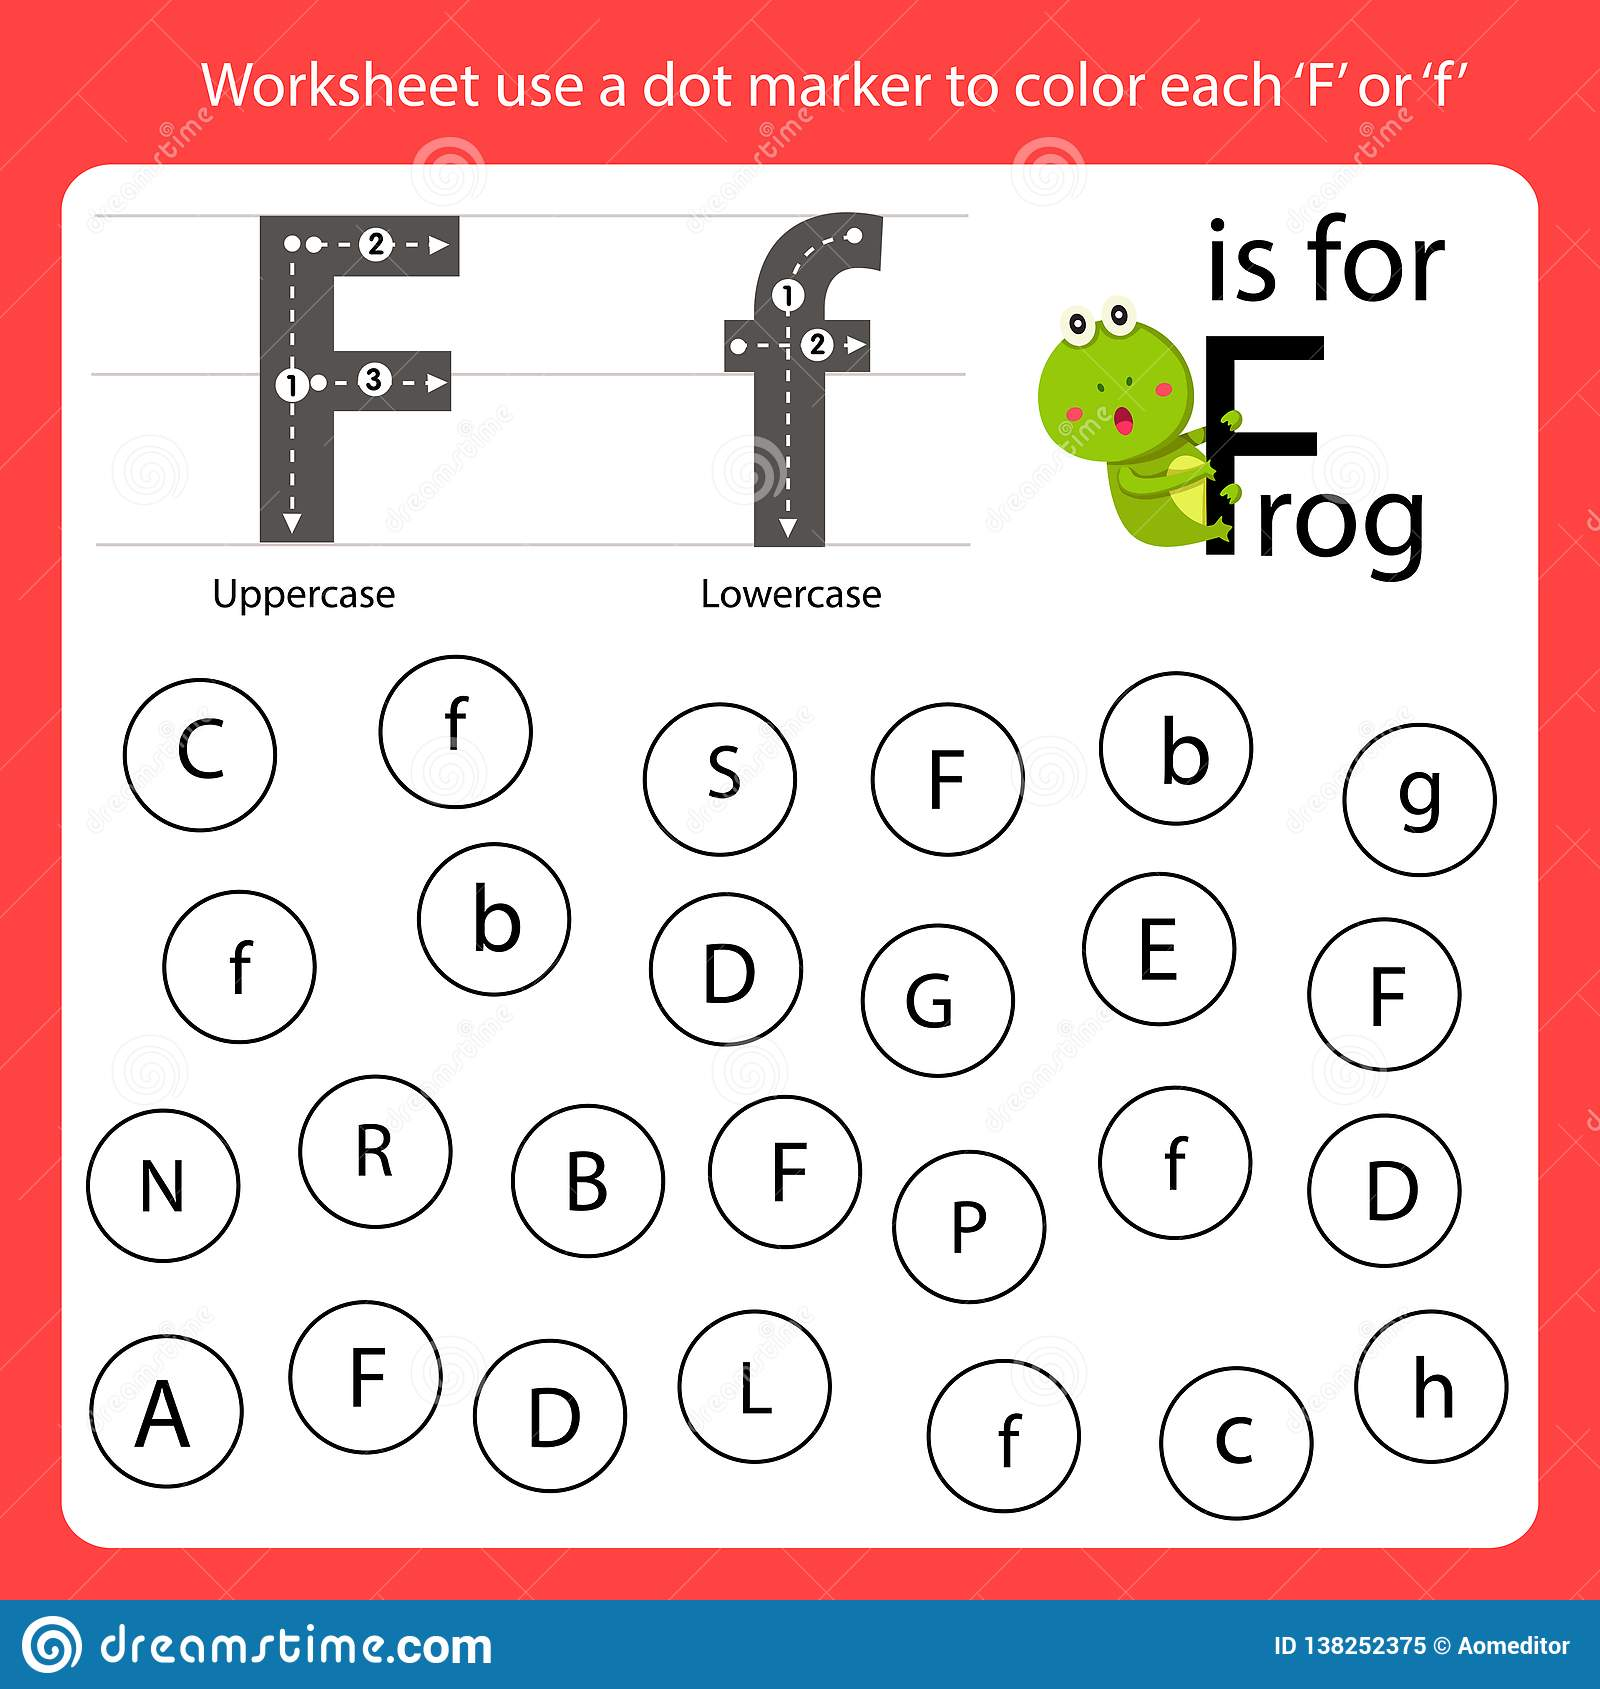 Find The Letter Worksheet Use A Dot Marker To Color Each F